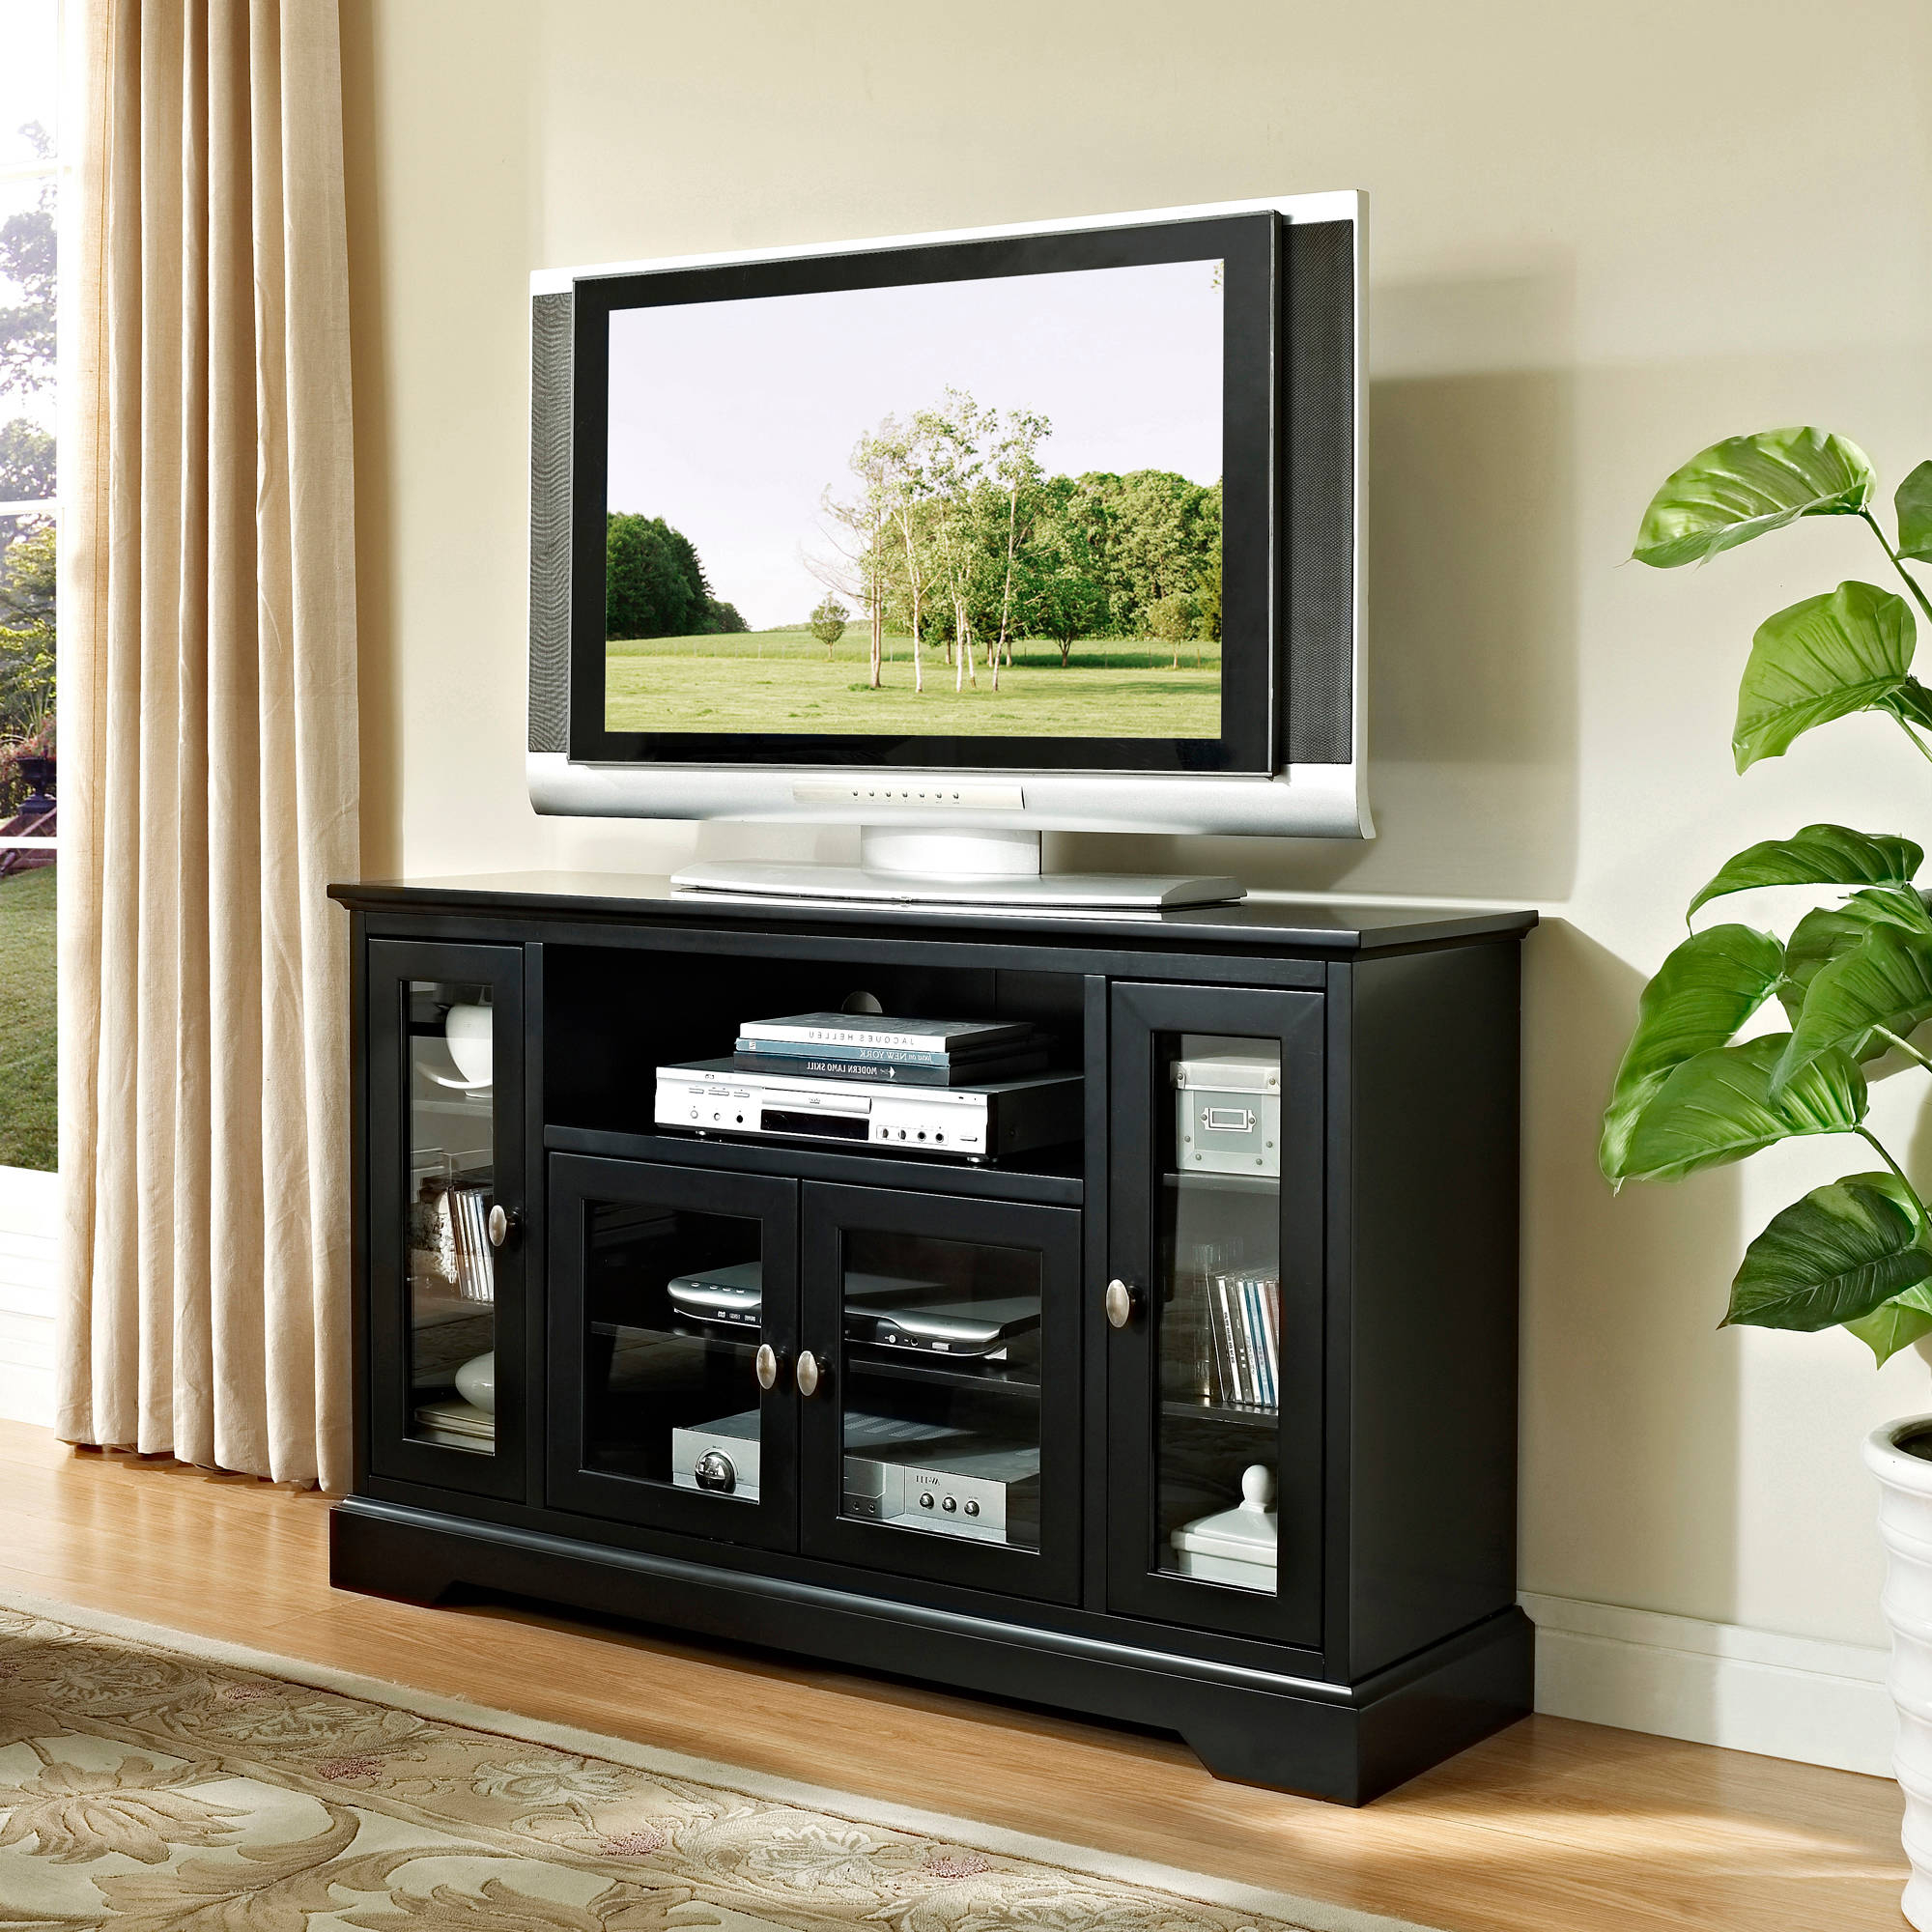 Current Walker Edison Highboy Style Wood Media Storage Tv Stand Console For Inside 24 Inch Tall Tv Stands (View 7 of 20)